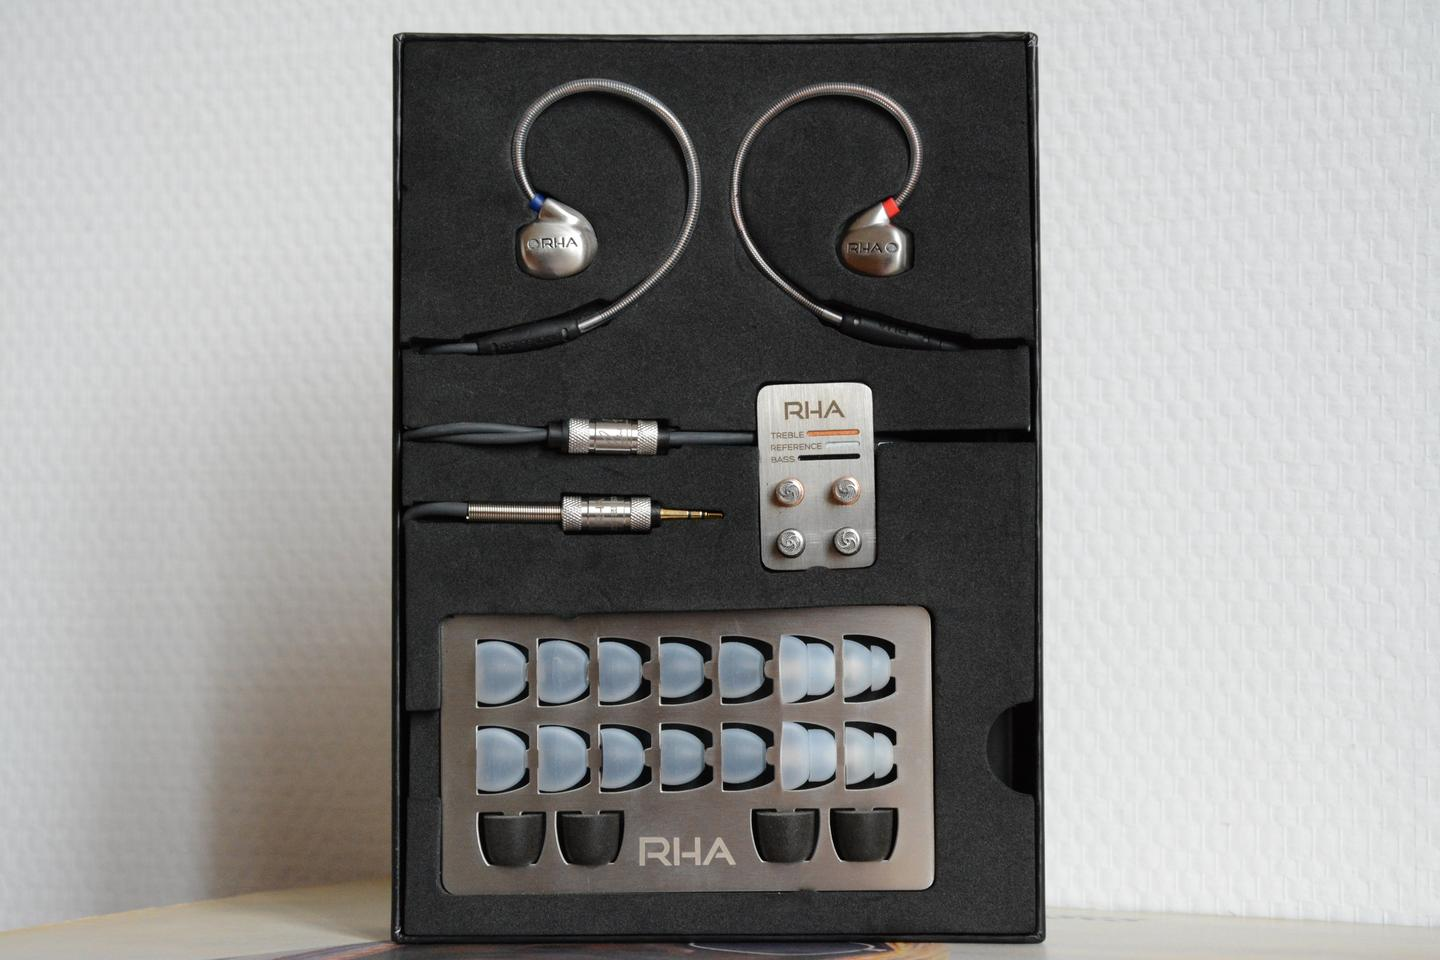 The T10 in-ear headphones come with 10 tips, three tuning filters and a carry pouch (Photo: Paul Ridden/Gizmag.com)